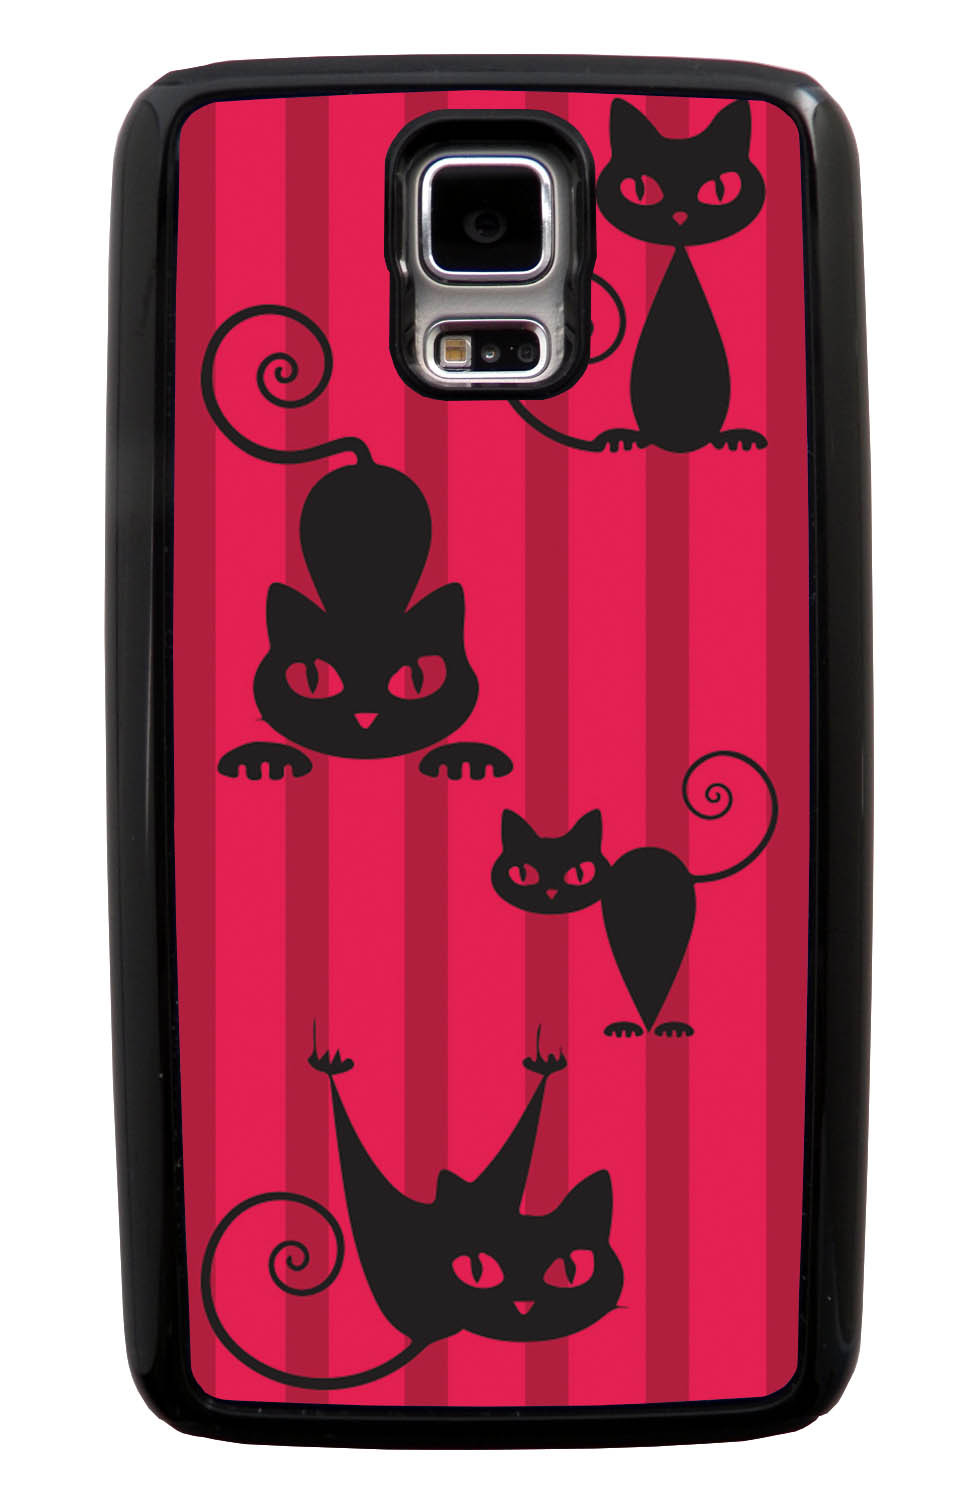 Samsung Galaxy S5 / SV Cat Case - Black Cat on Red Stripes - Simple Stencils Cutout - Black Tough Hybrid Case